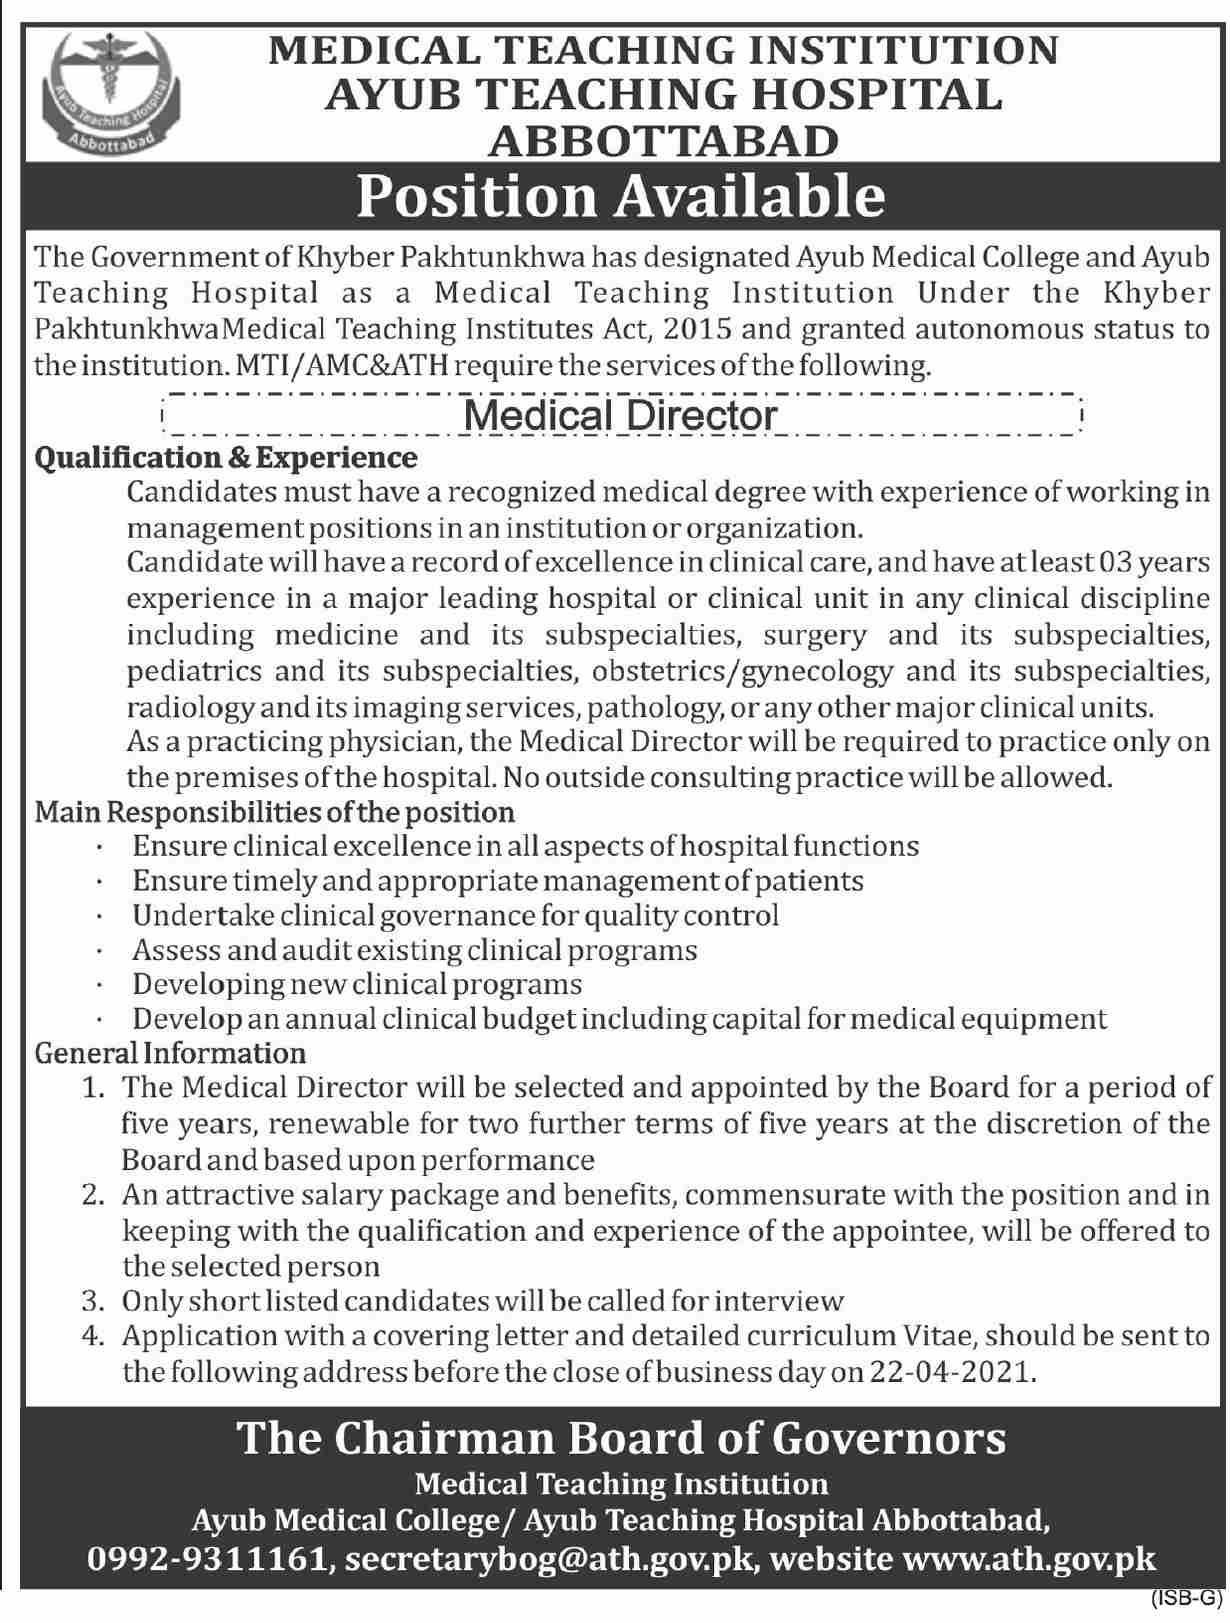 Medical Teaching Institution Jobs 2021 for Medical Director